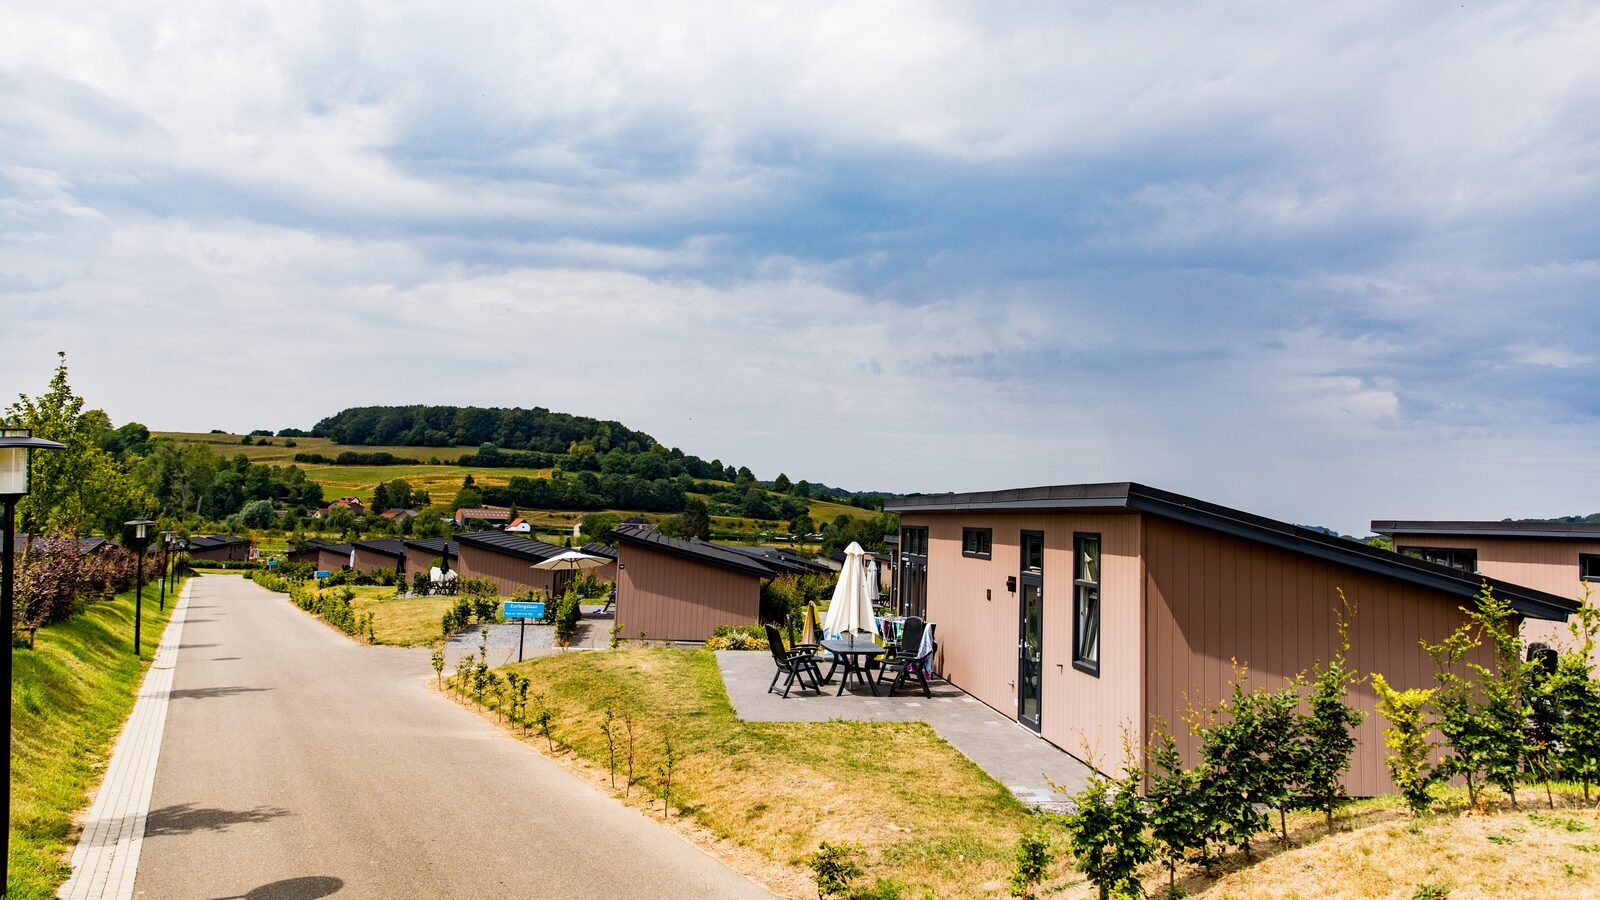 Renting a chalet in Limburg